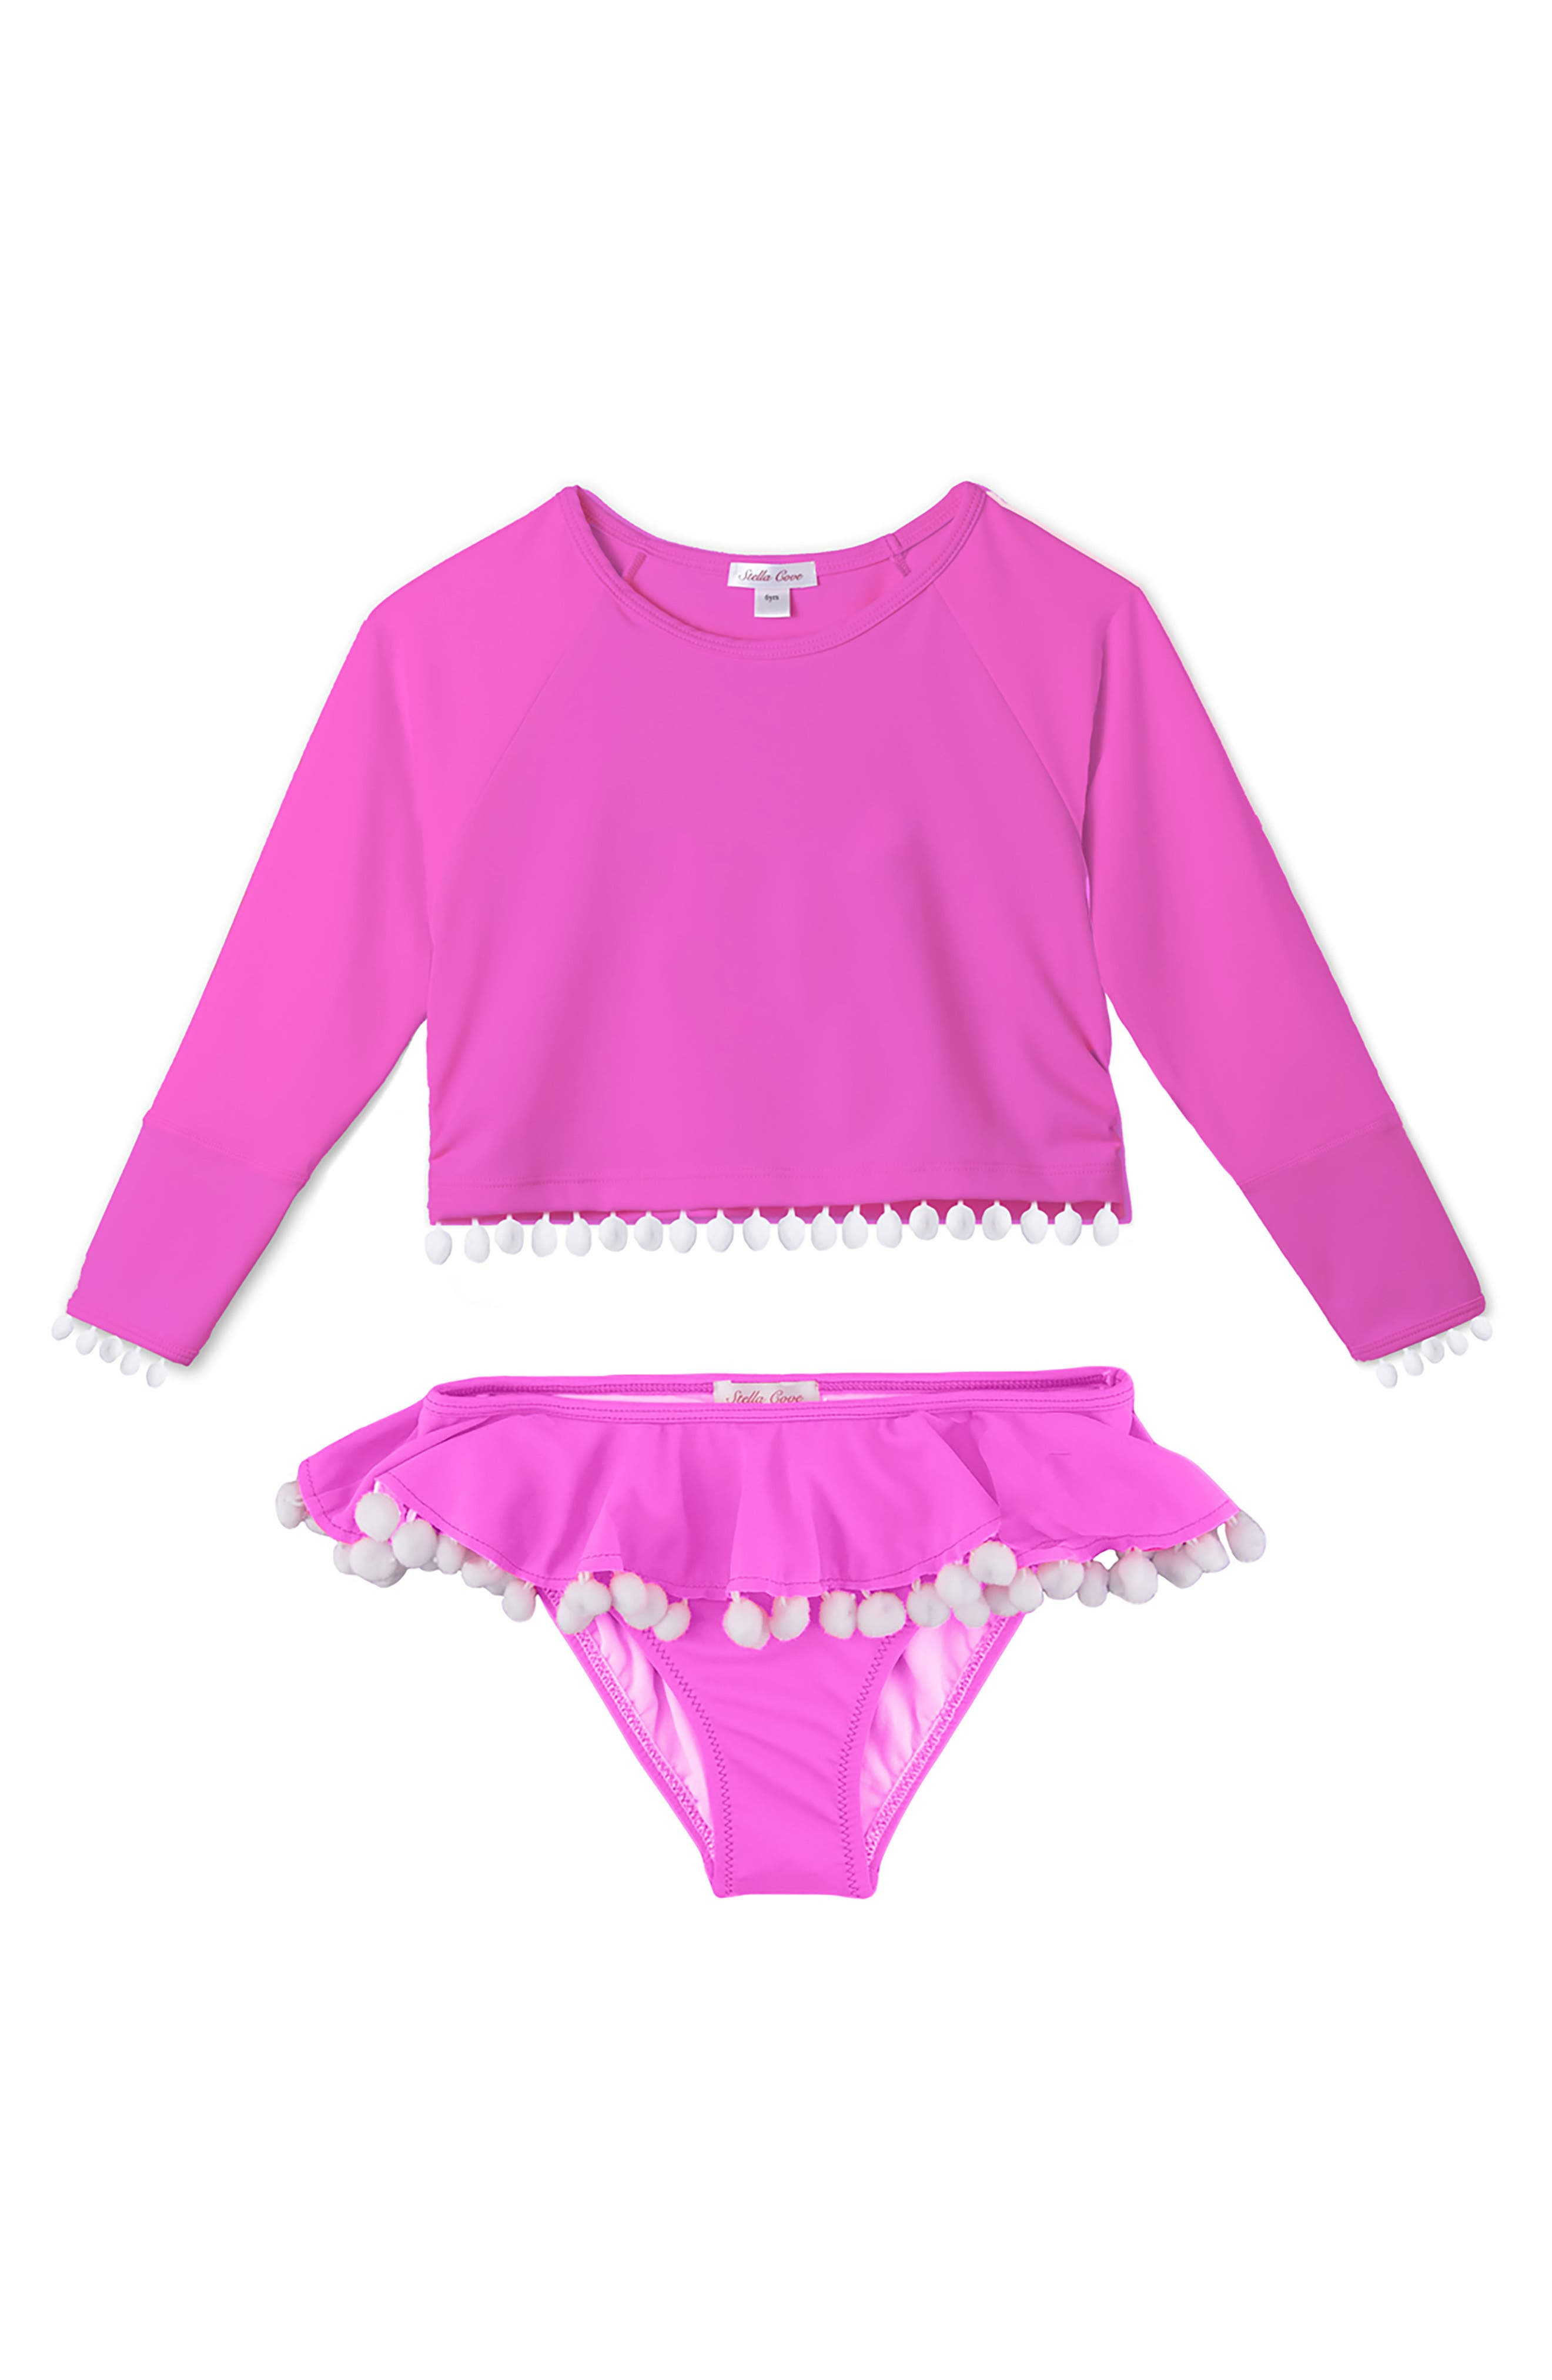 Main Image - Stella Cove Pompom Rashguard Two-Piece Swimsuit (Little Girls)